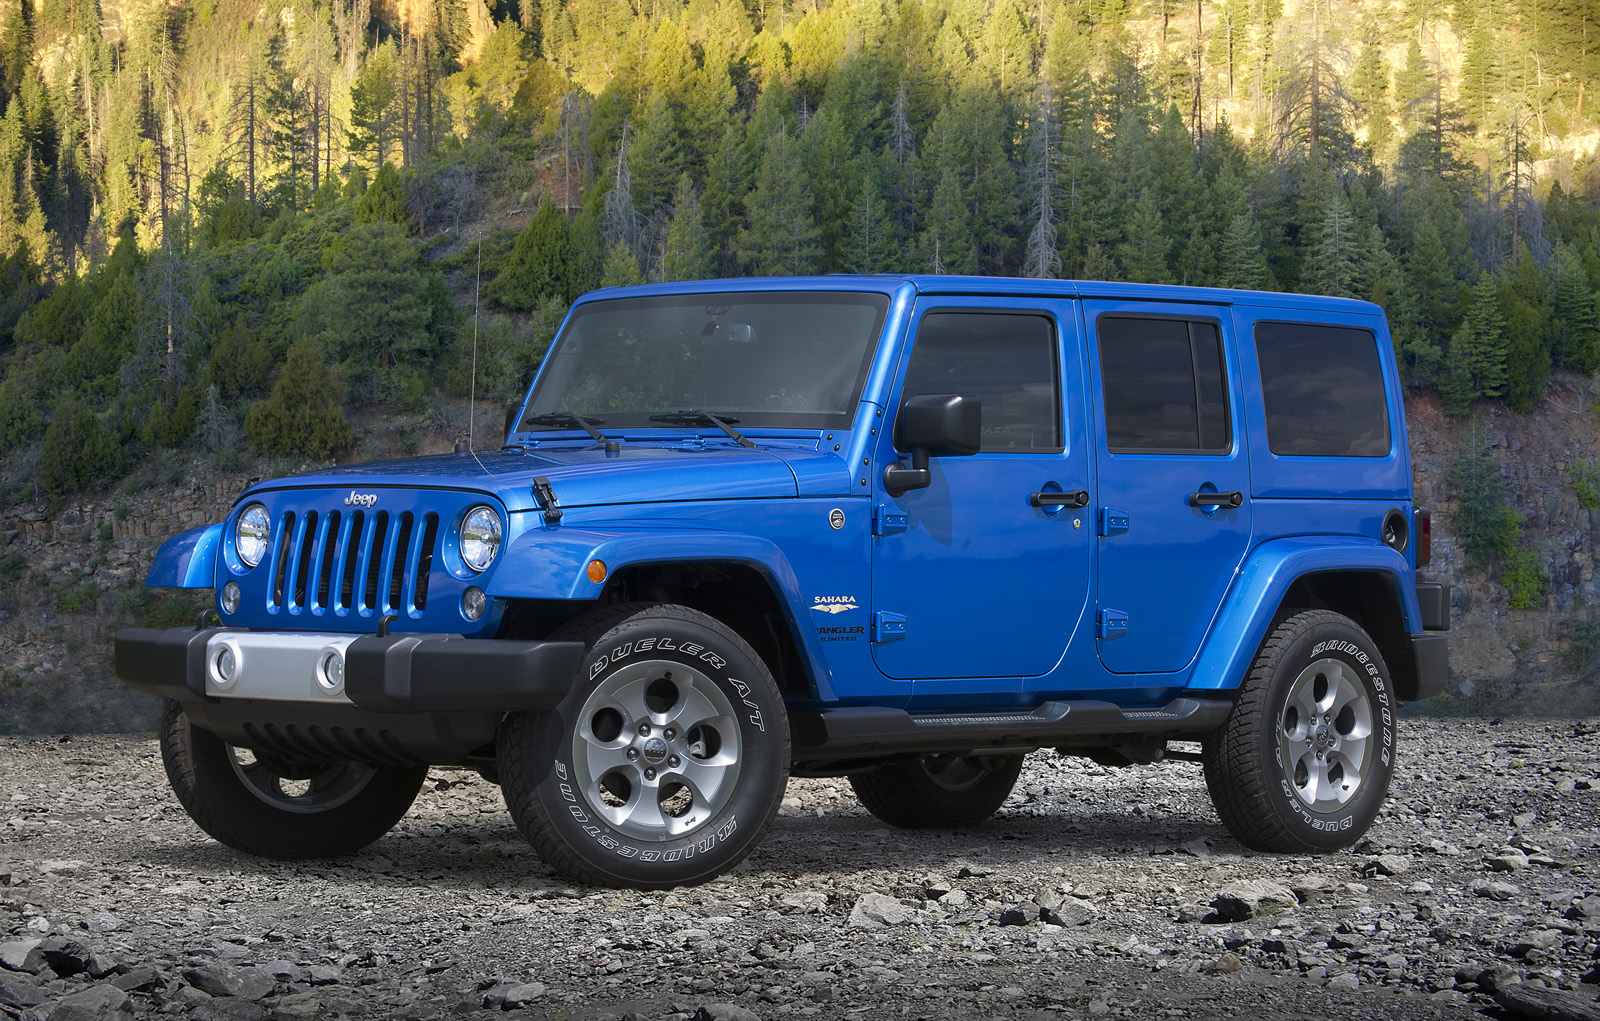 The Efficient Powertrain Configuration Should Also Mean Fuel Economy  Figures Hovering Around A Glorious 30 Mpg. 2015 Jeep® Wrangler Unlimited  Sahara